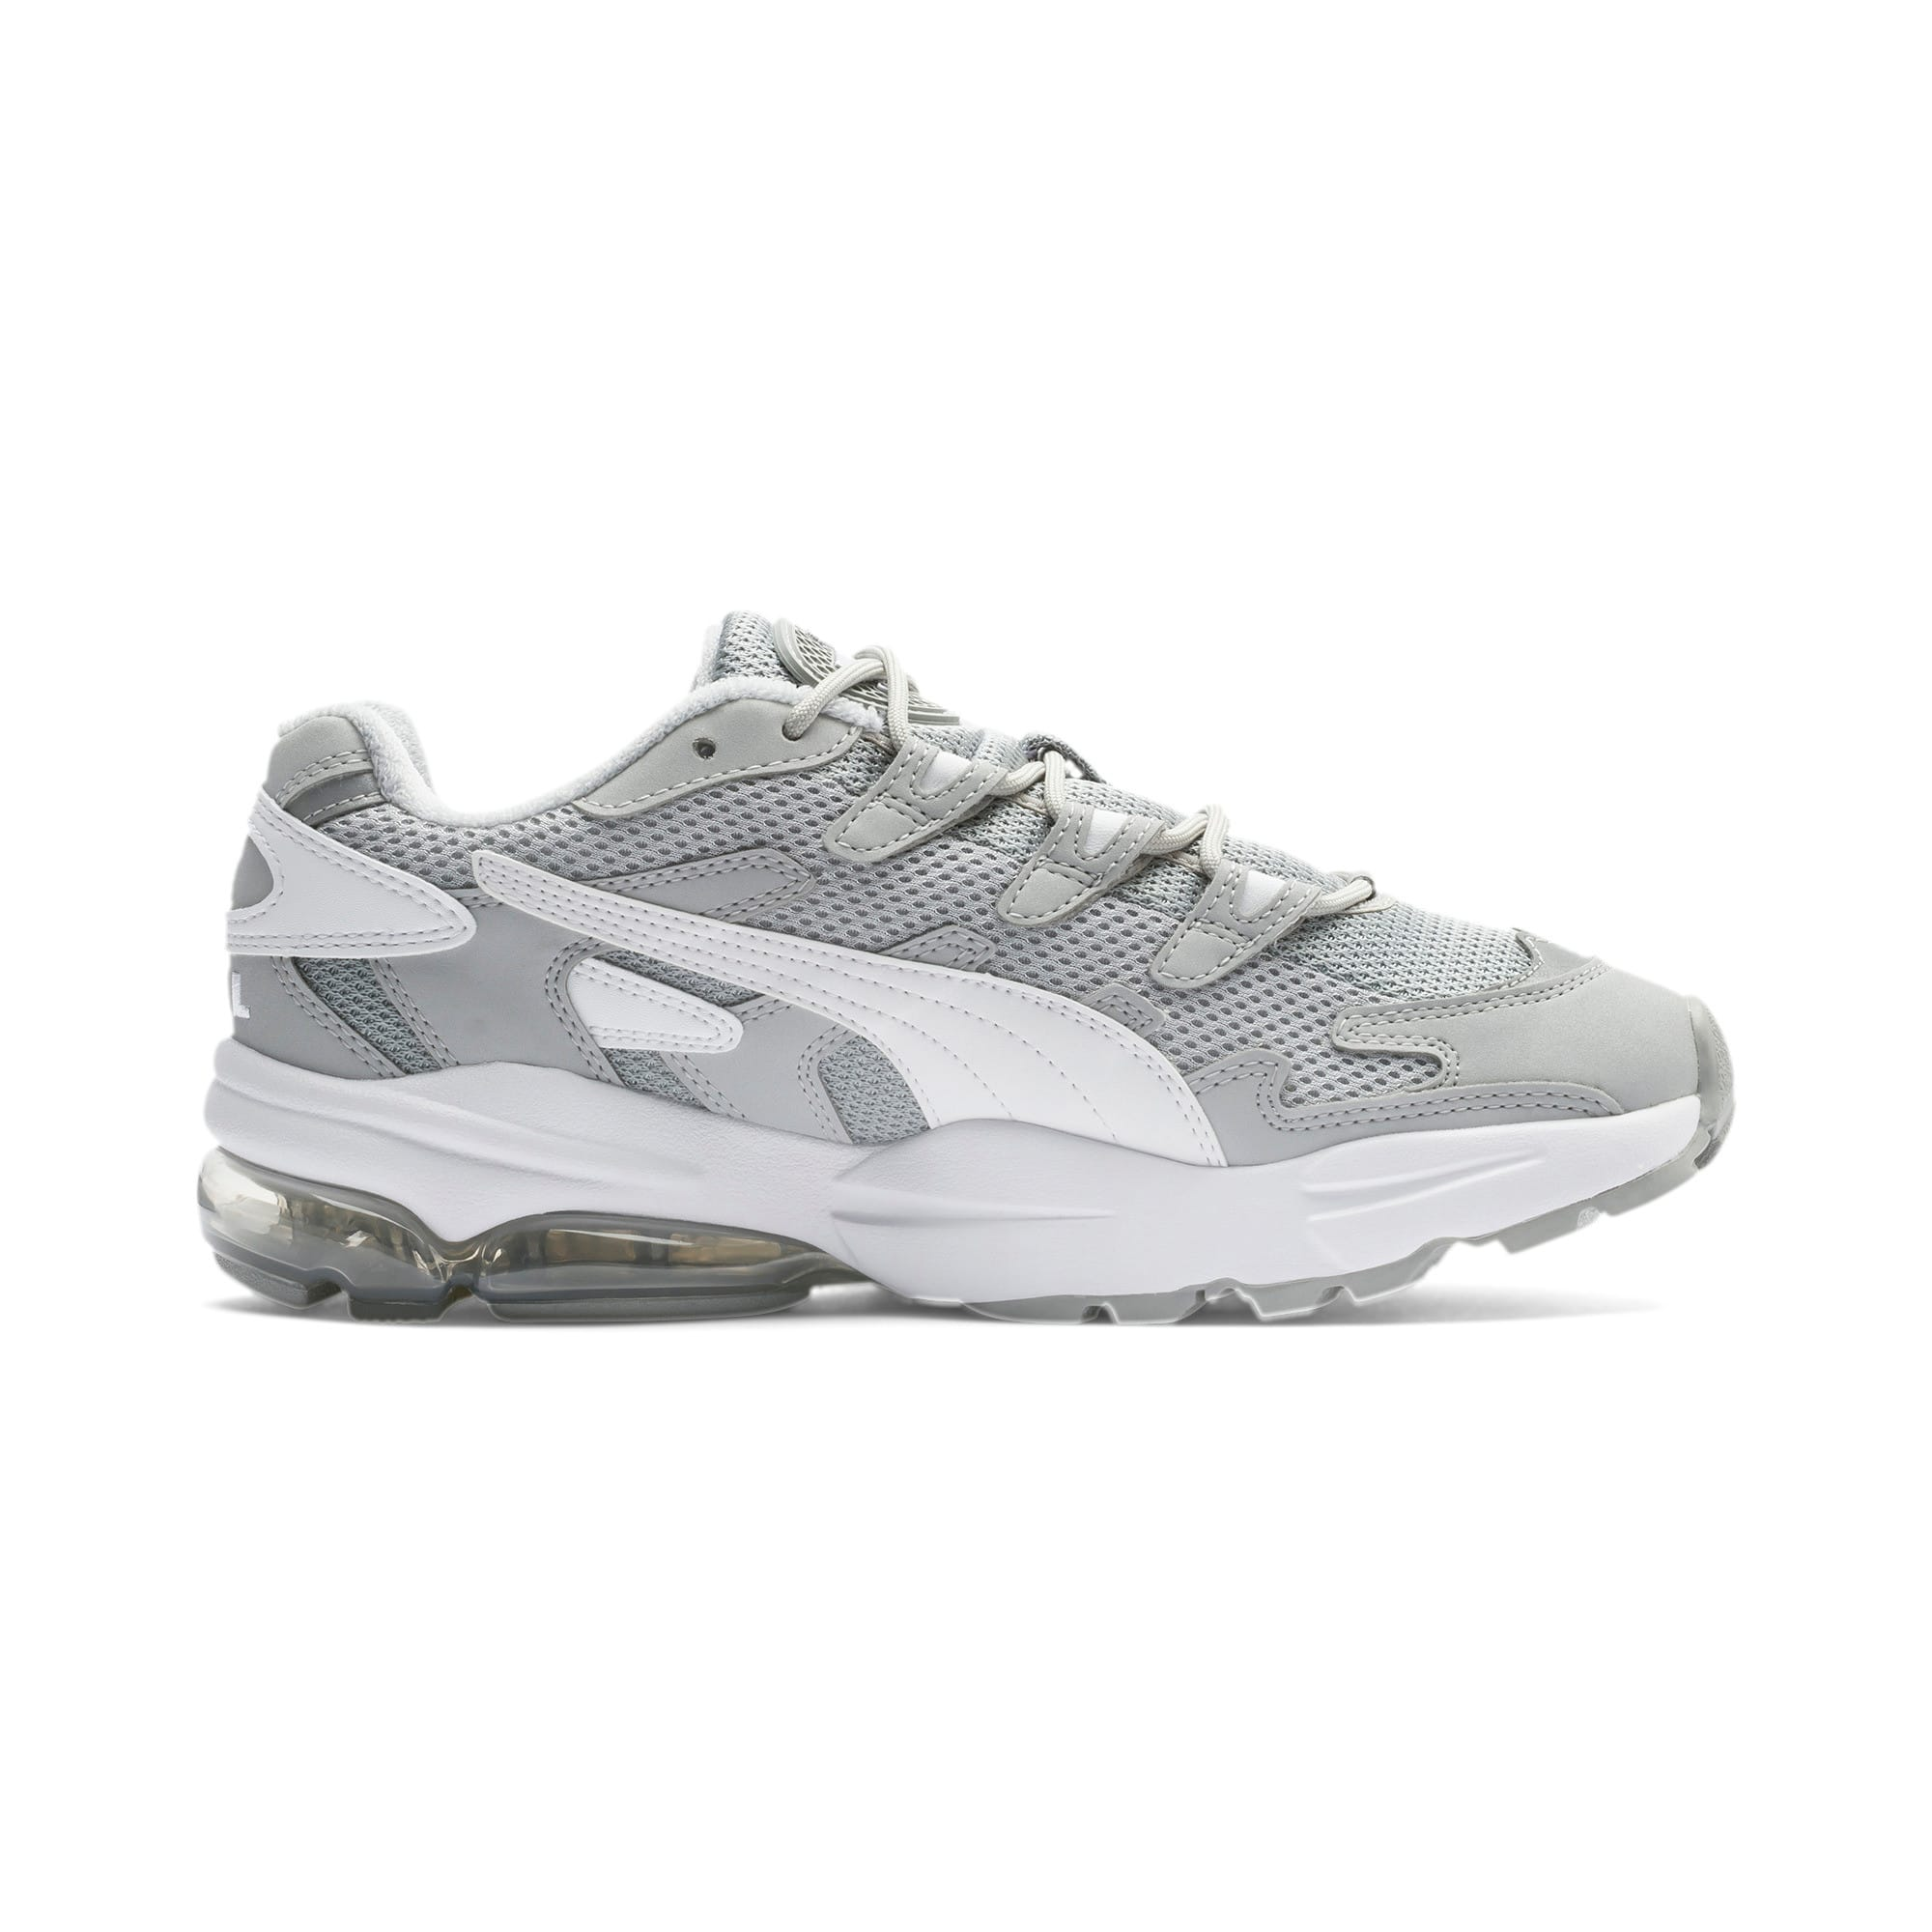 CELL Alien OG Trainers, High Rise-Puma White, large